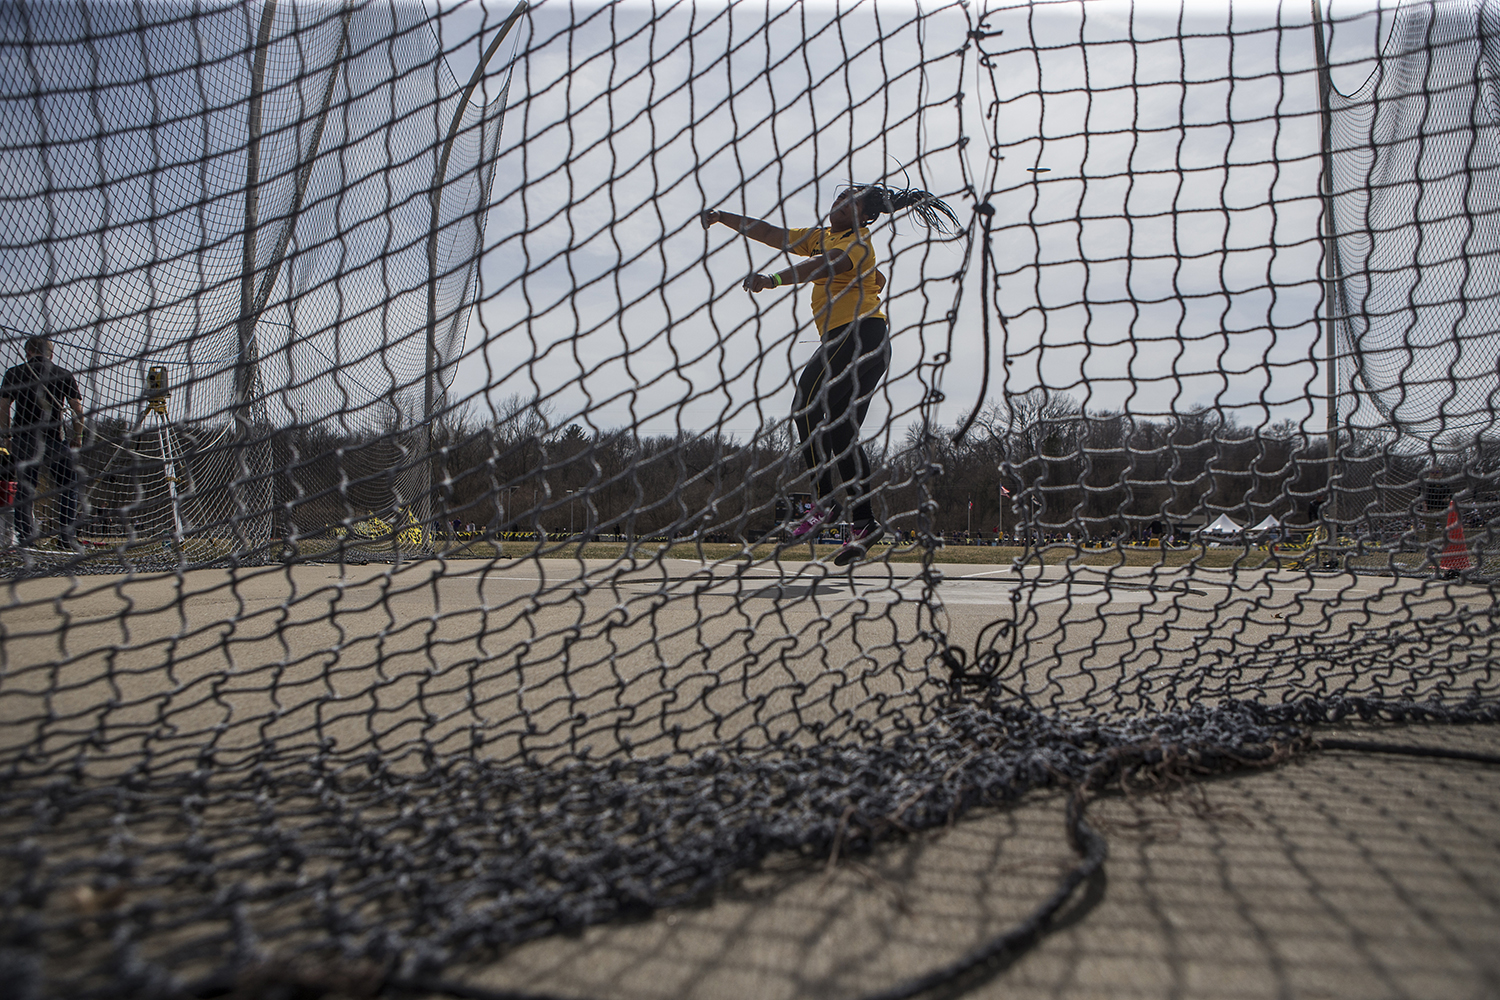 Iowa sophomore Laulauga Tausaga attempts a discus throw during the 19th annual Musco Twilight meet at the Francis X. Cretzmeyer Track in Iowa City on Thursday, April 12. Tausaga finished first in the event with a distance of 56.69 meters.